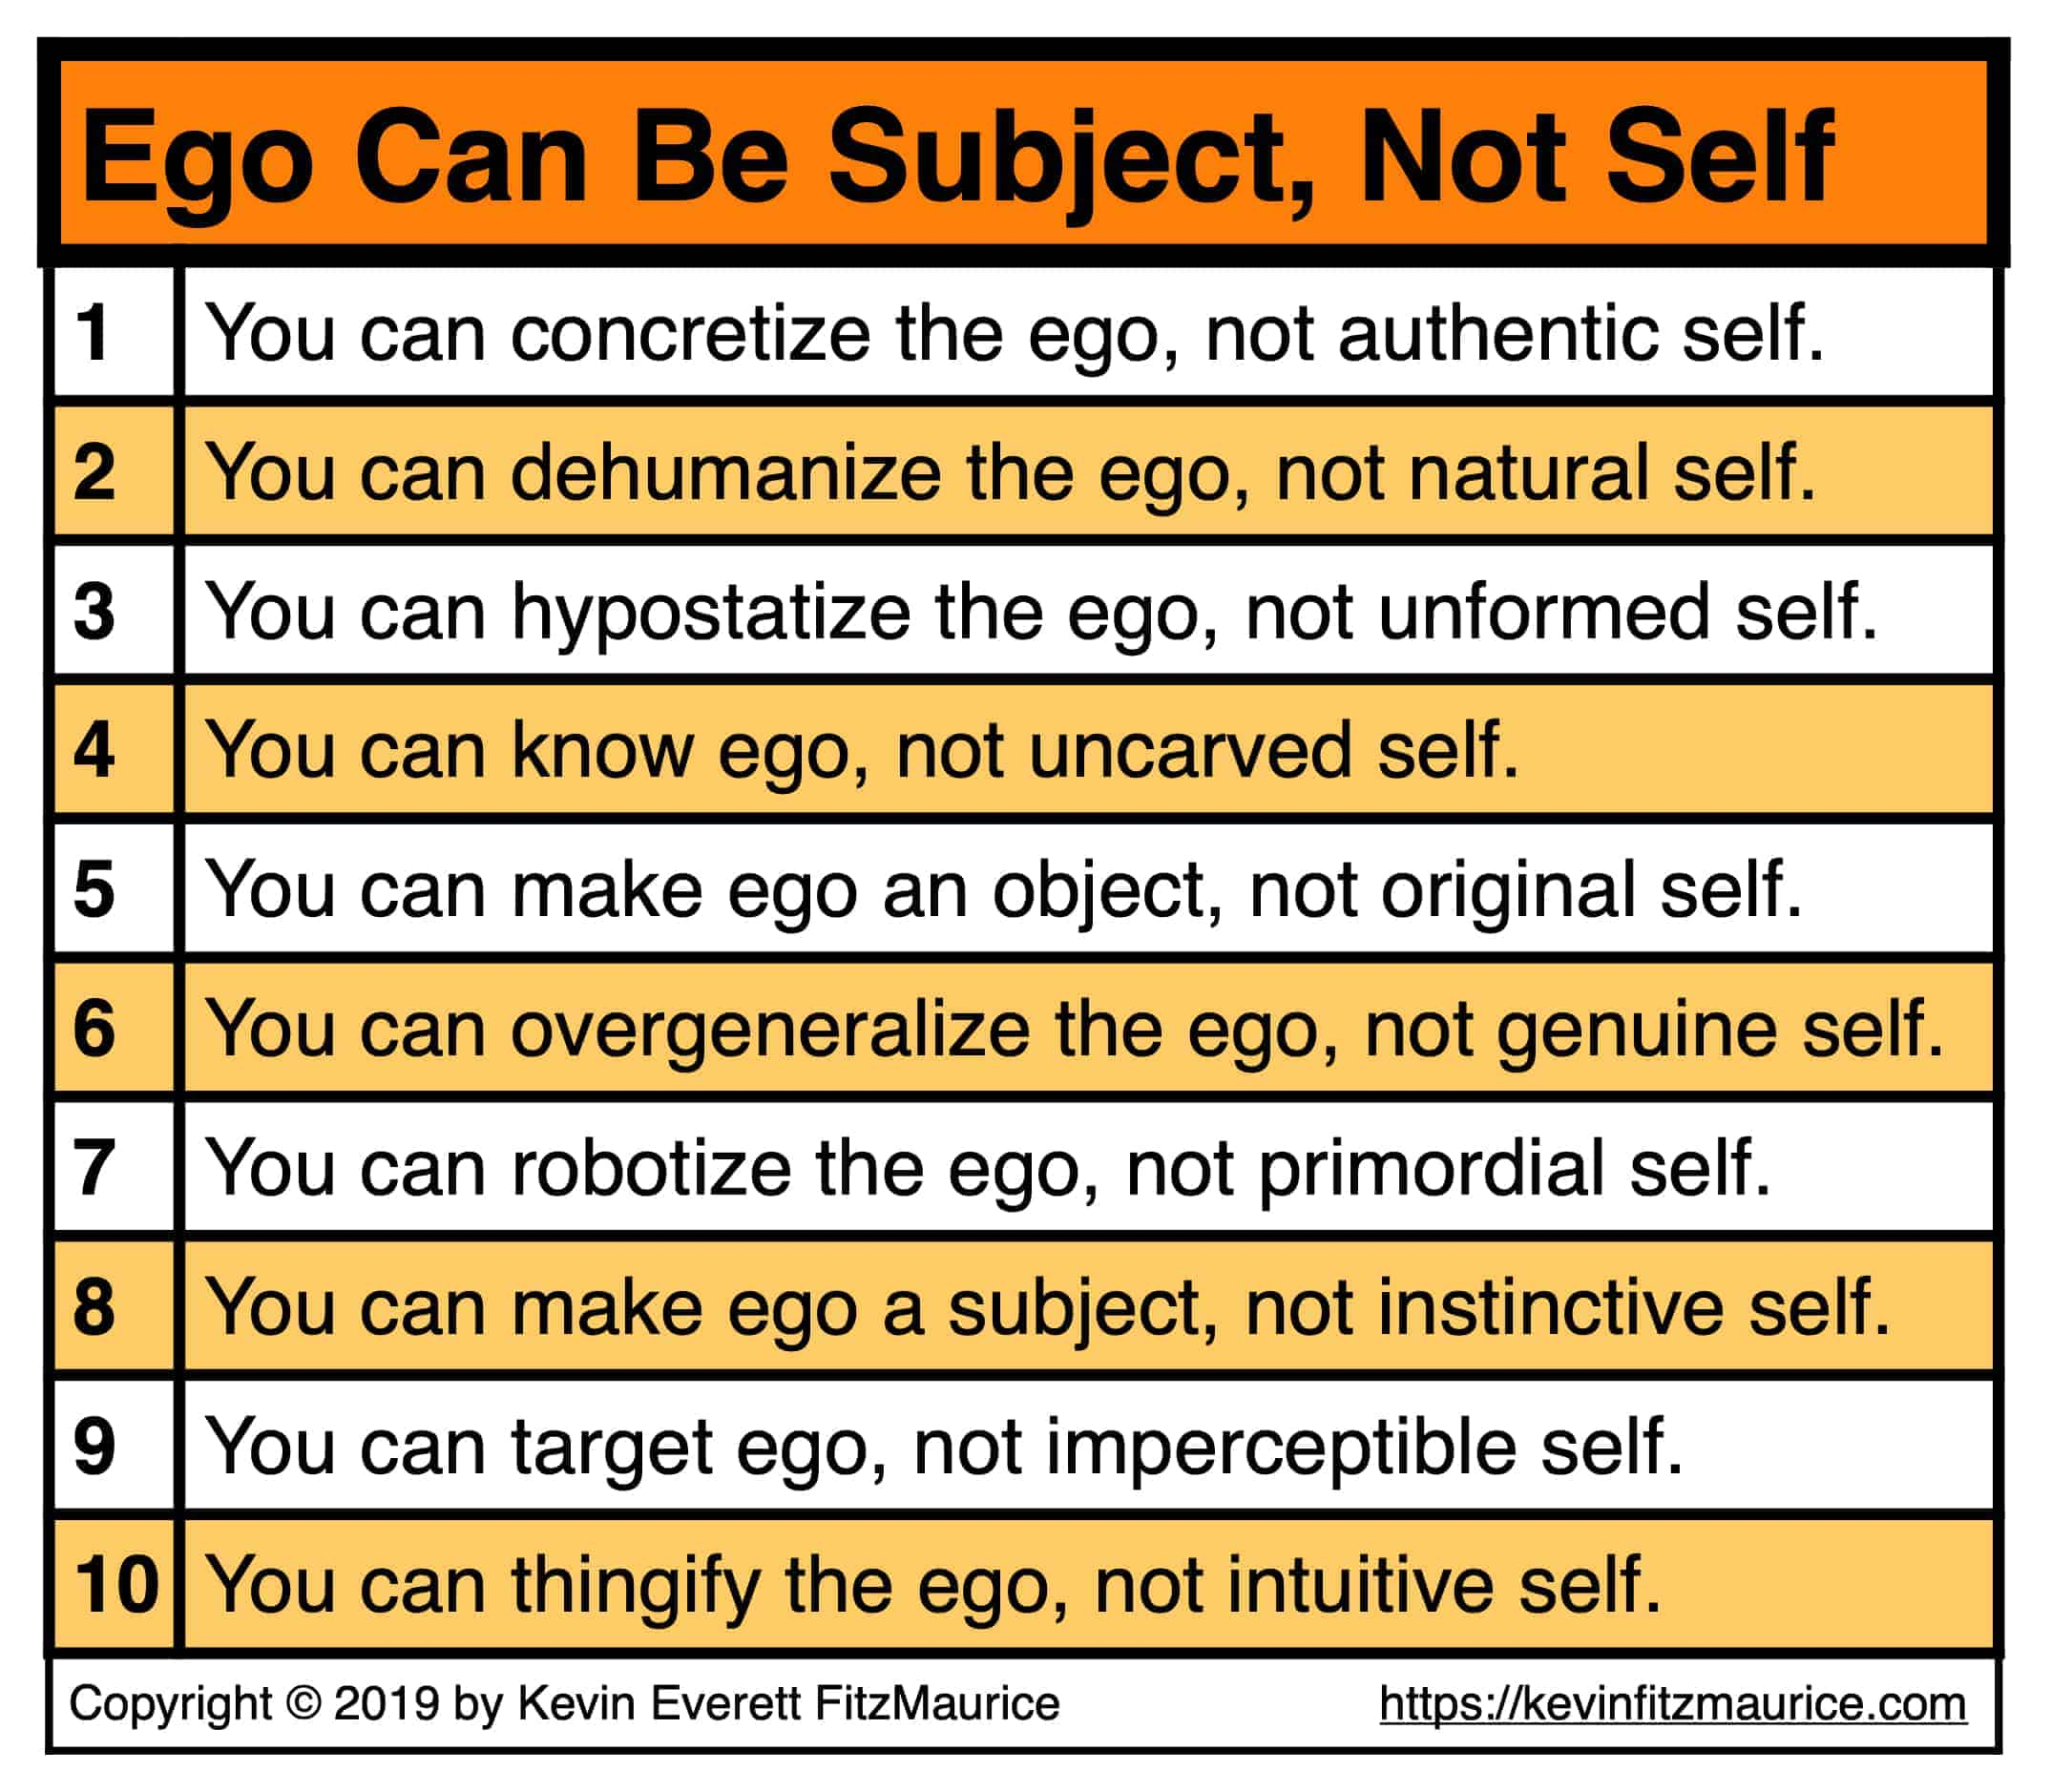 Ego Can Be an Object or Subject, Not Self